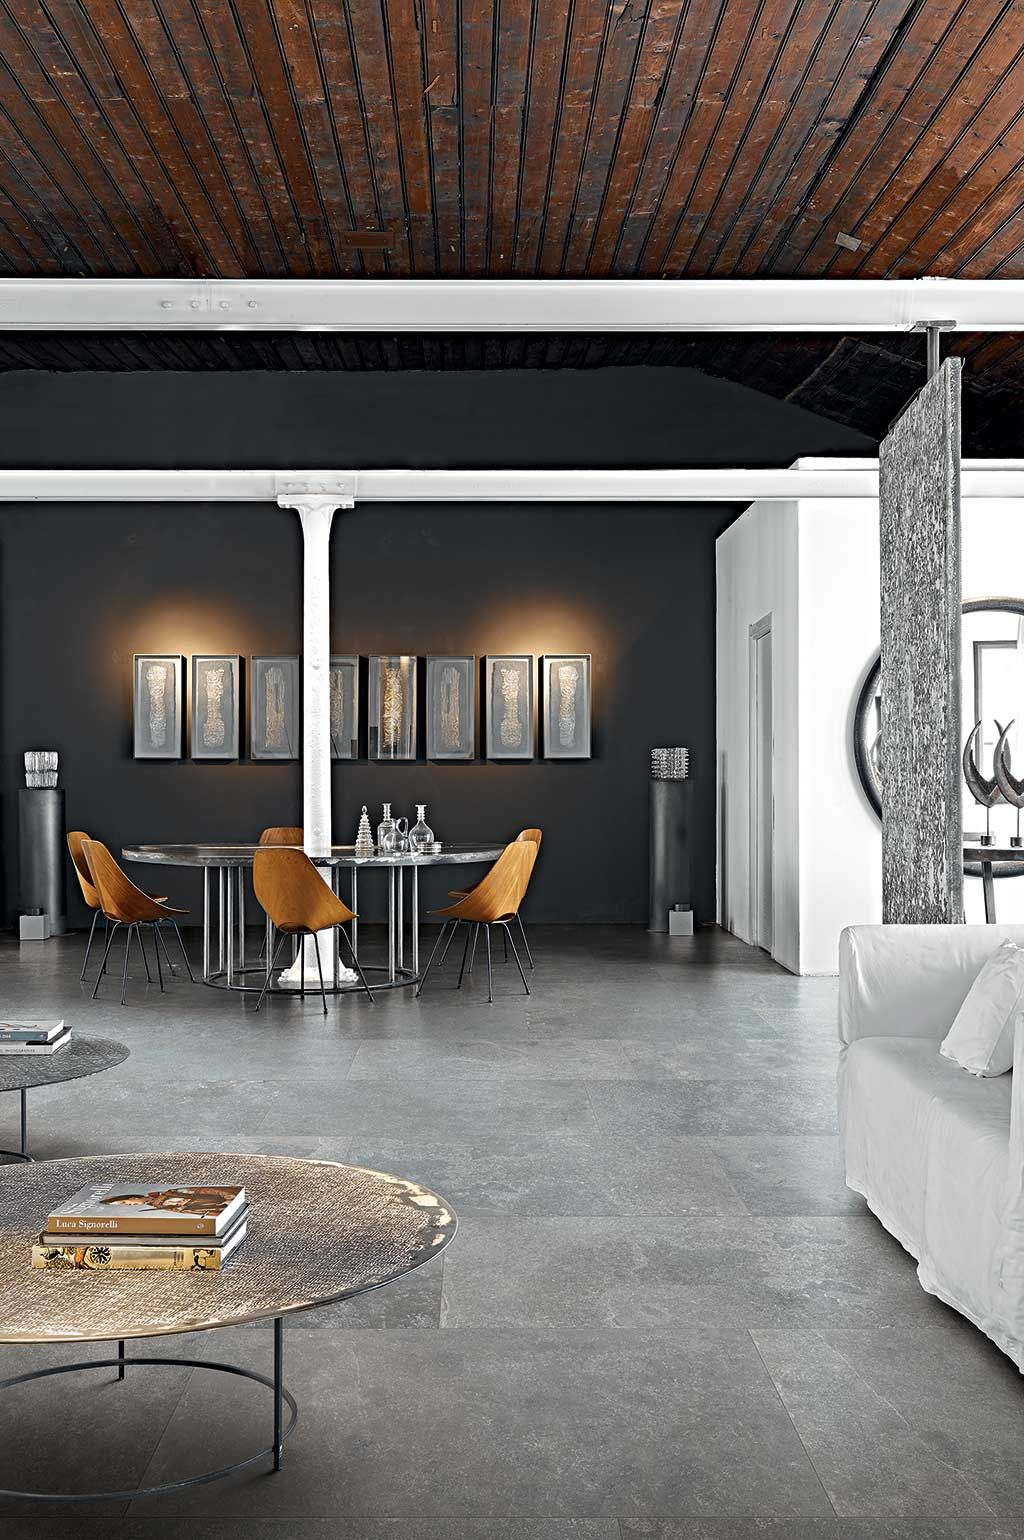 Urban Style Evokes The Value Of Strong Strong Timeless Authenticity To Bring Naturalness Simplicity Urban Interior Design Casa Dolce Casa Urban Interiors